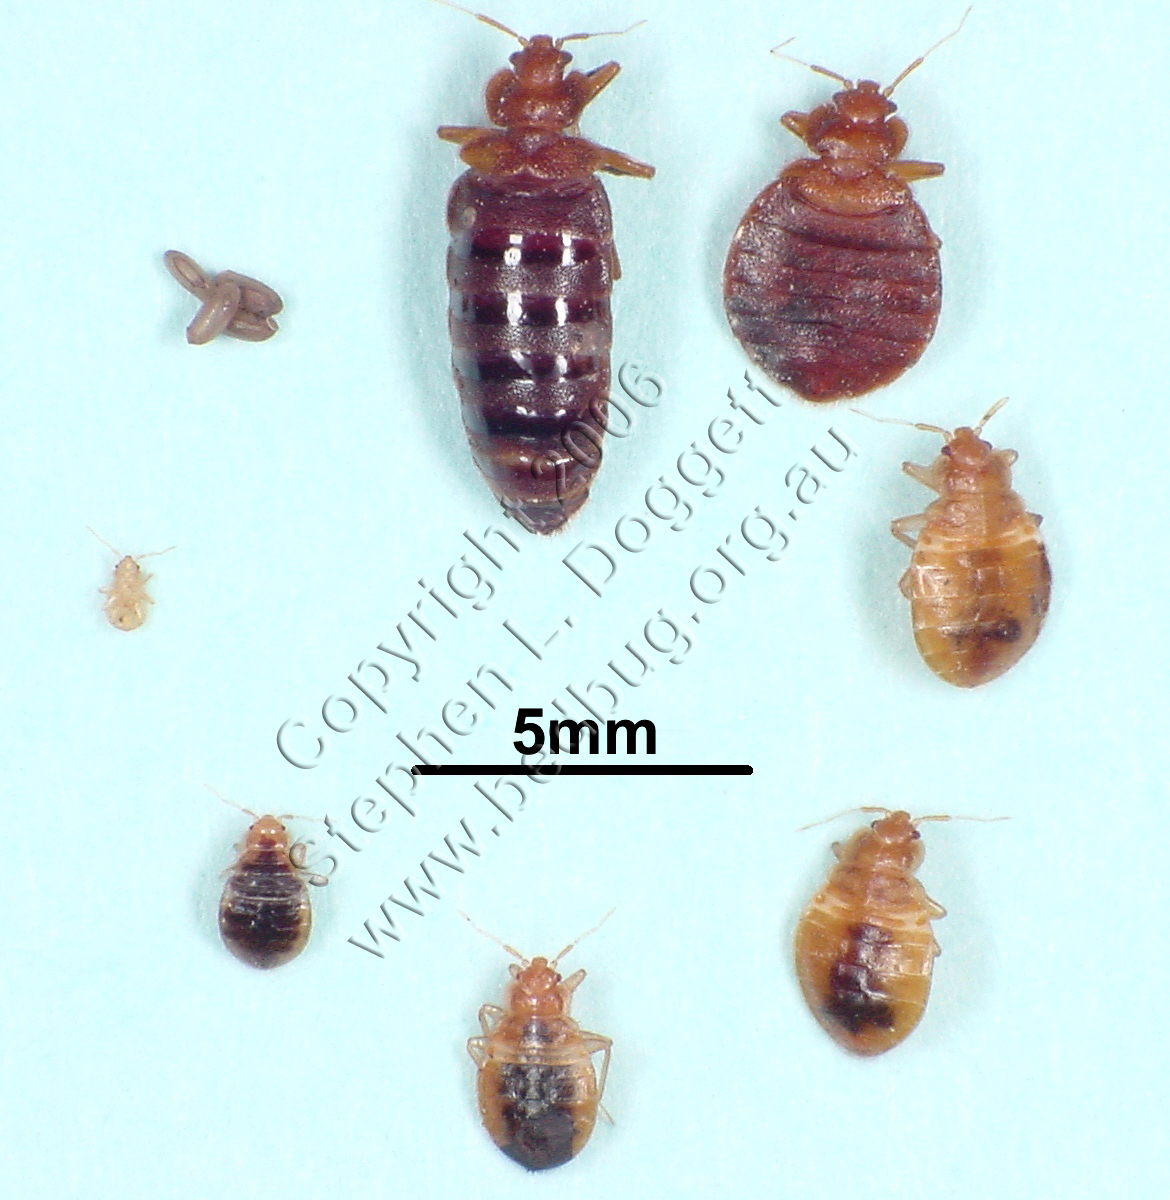 Stephen l doggett s bed bug life cycle photo